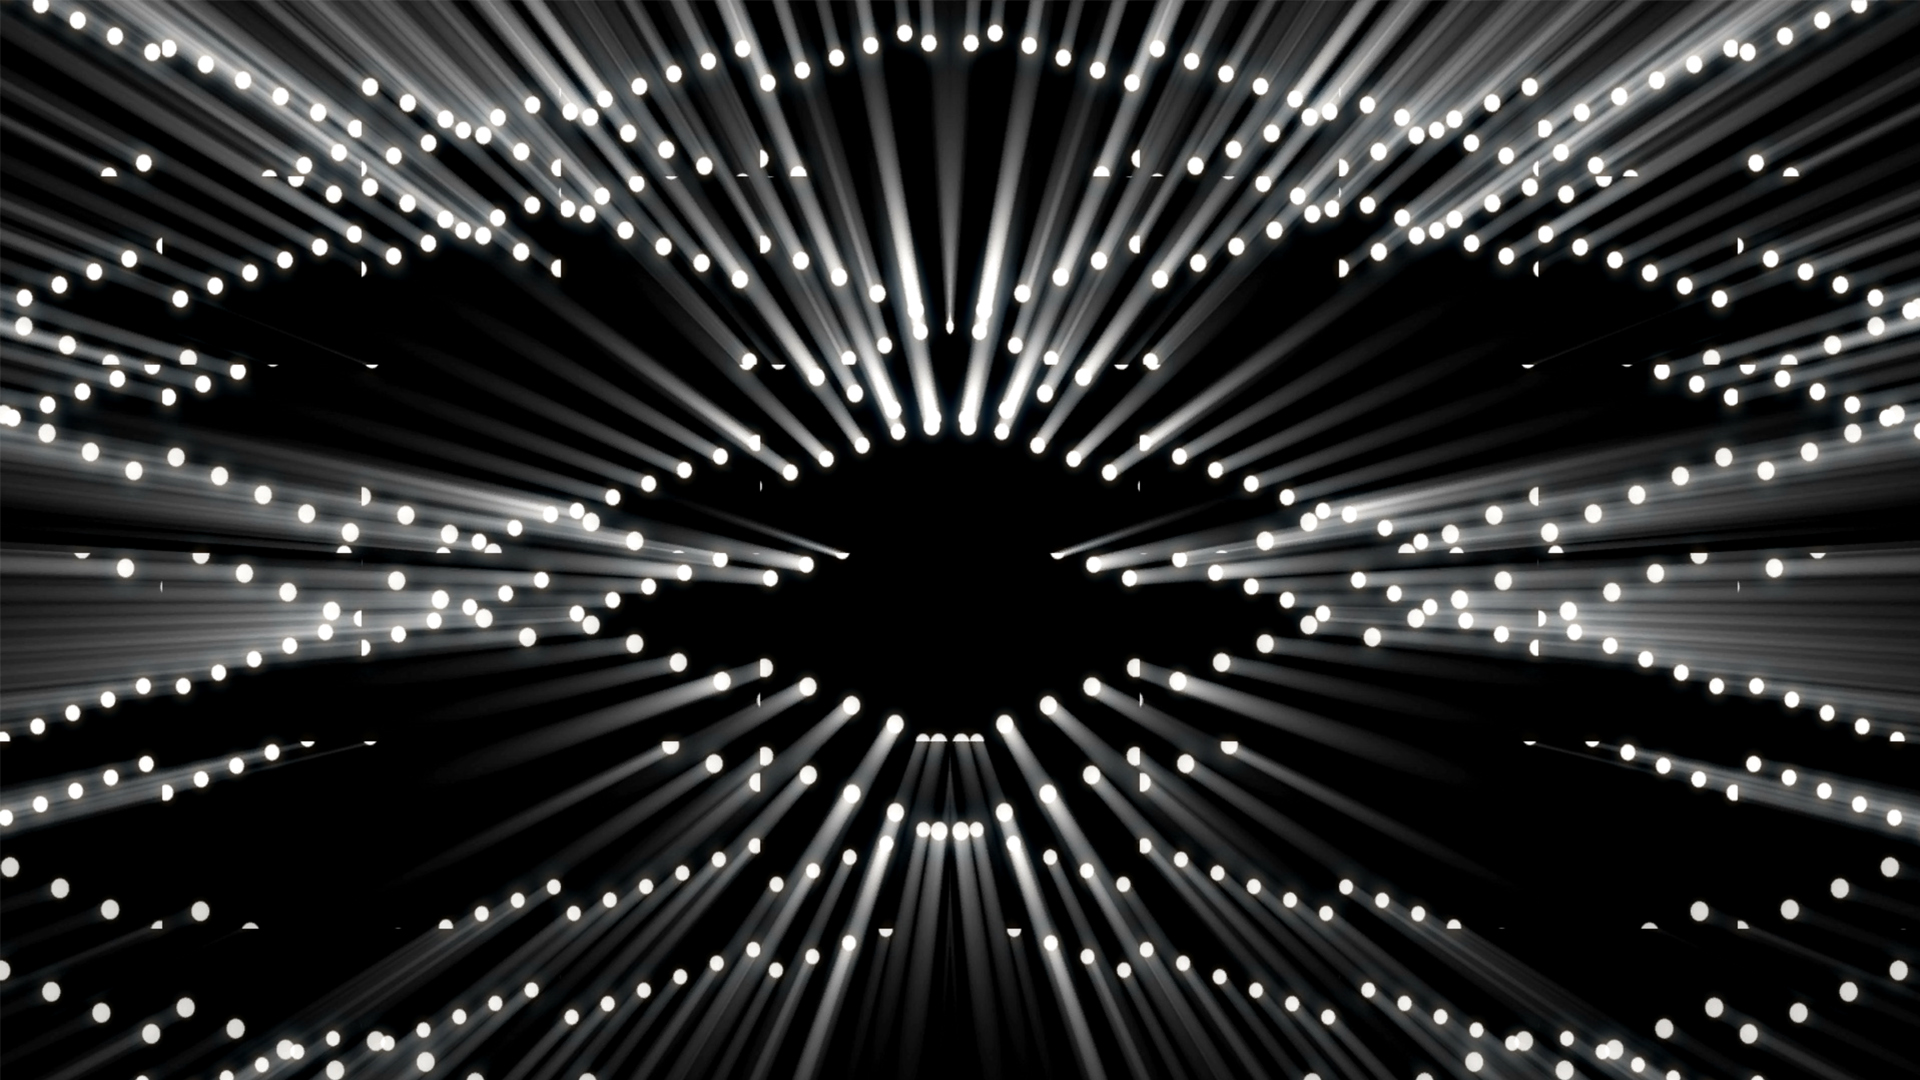 Abstract__art_pattern_texture vj loop